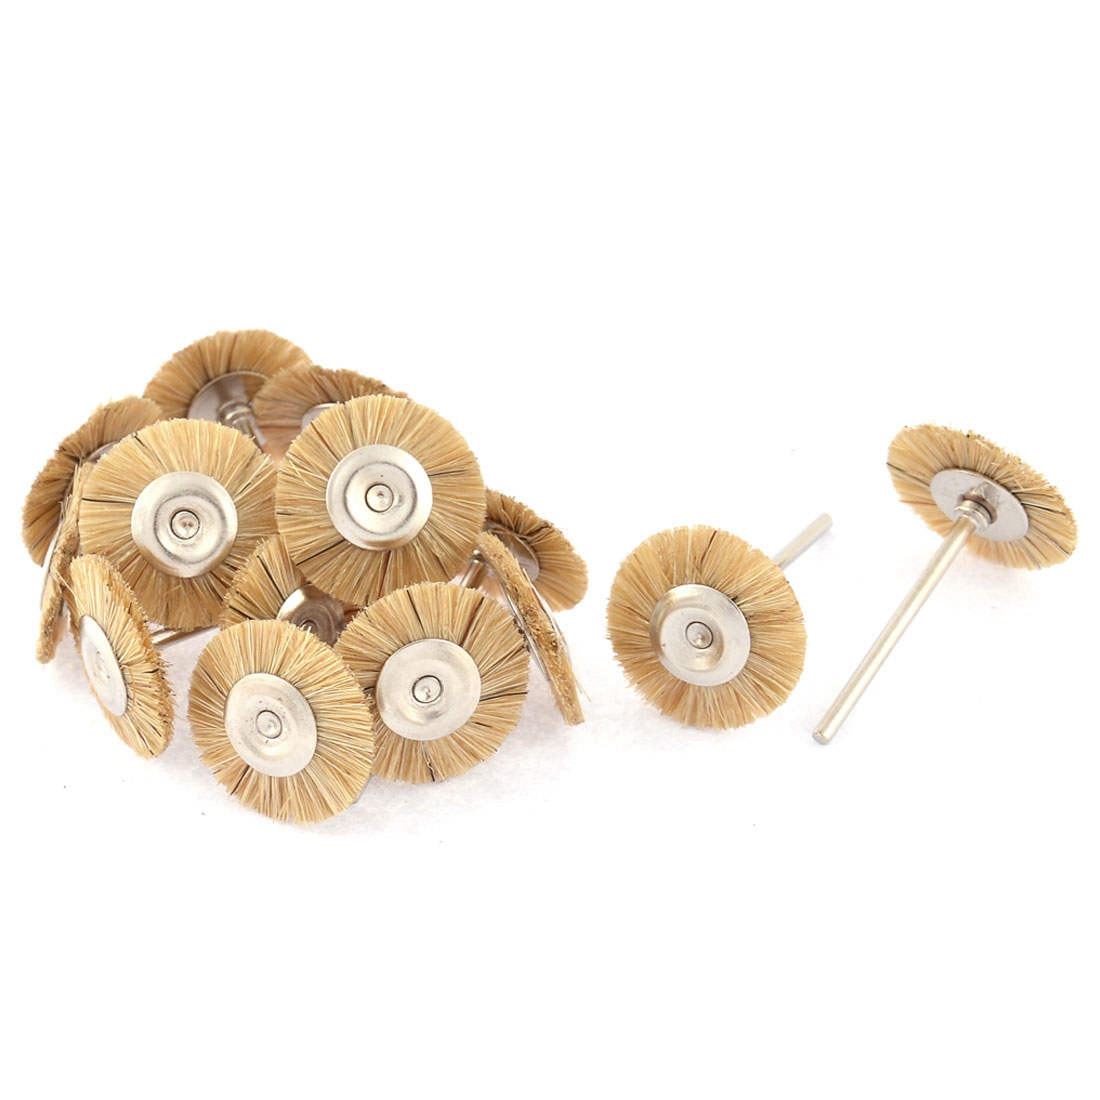 25mm Dia Head 2.3mm Shank Grinding Polishing Mounted Wheel Brown 15pcs